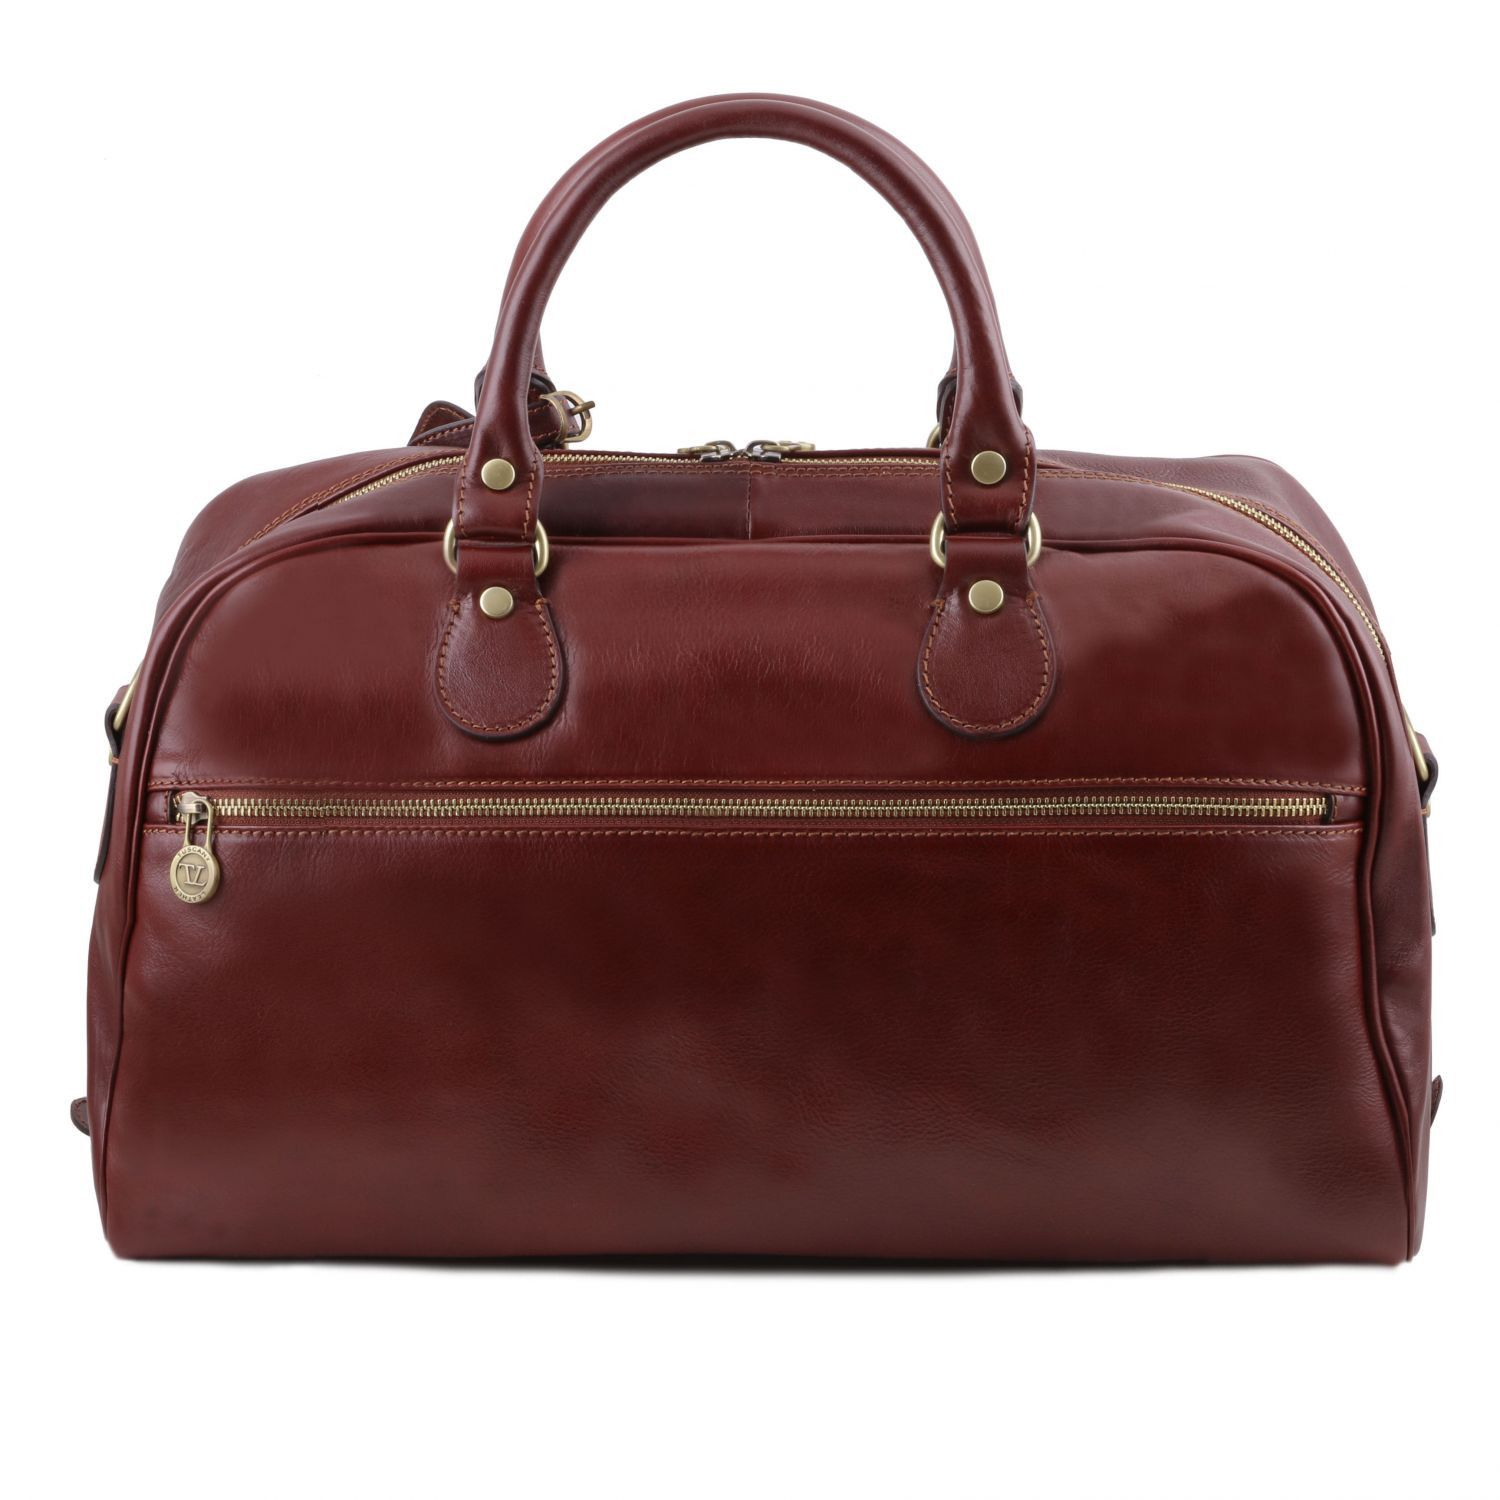 Magellan - Leather travel set (TL141258) - Leather travel sets | DILUSSOBAGS